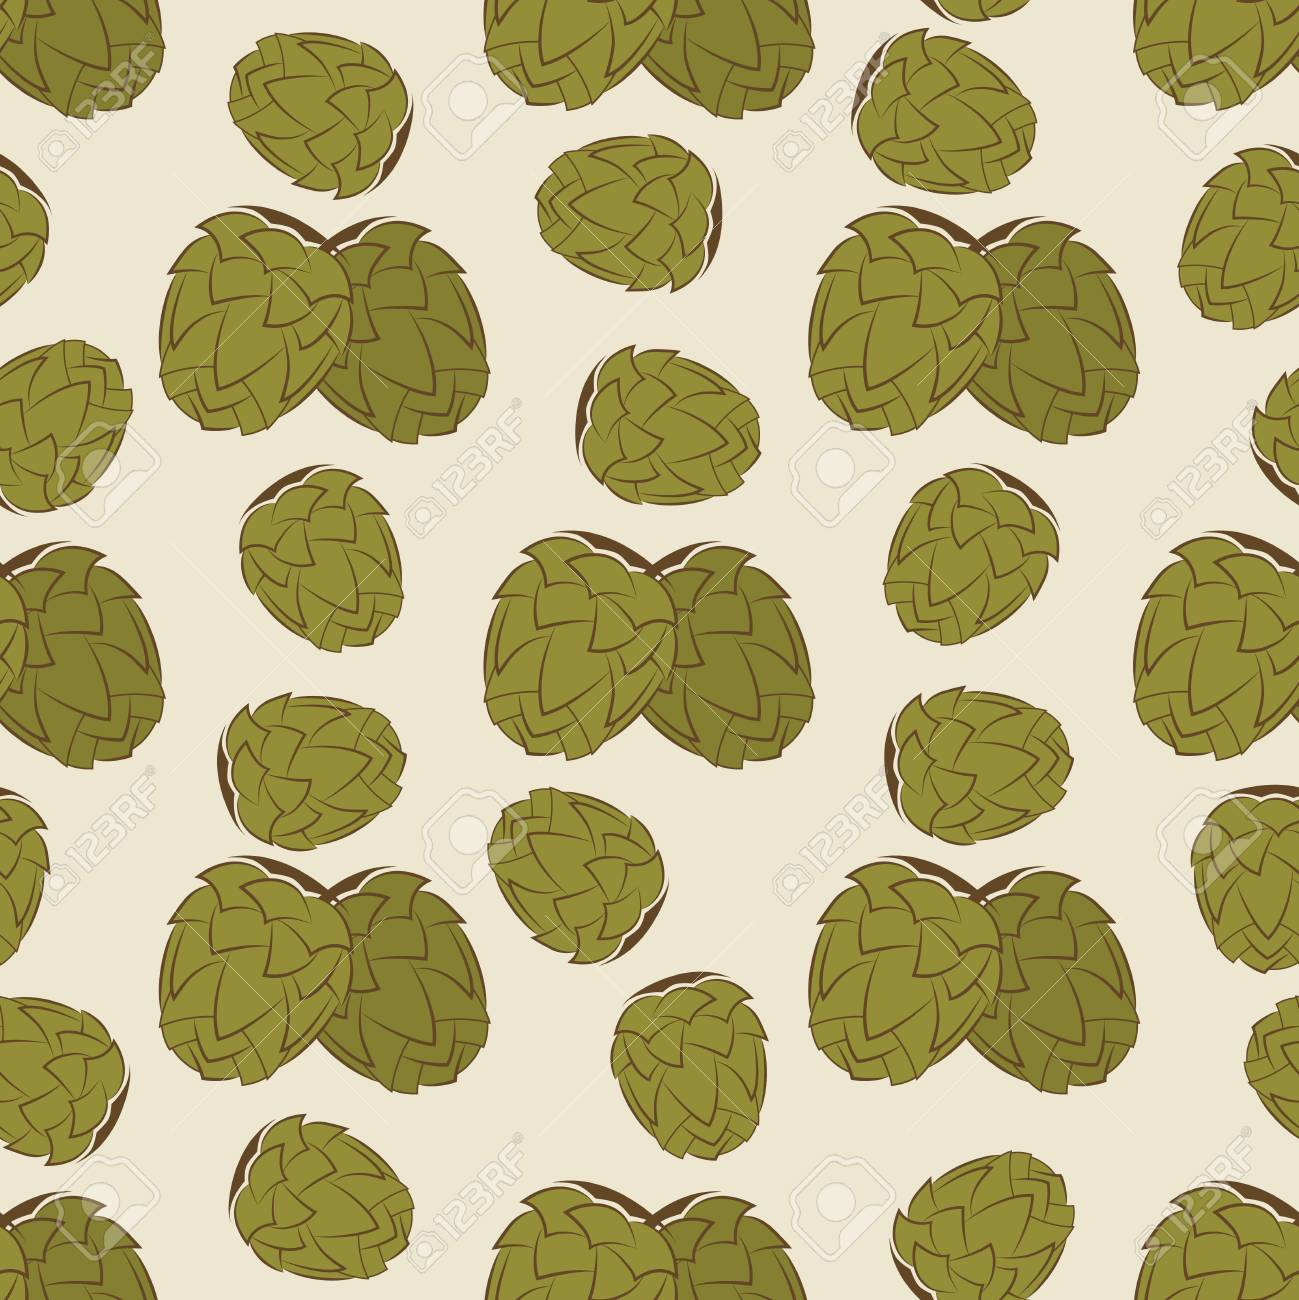 Green Hop Seamless Pattern Design Vintage Texture With Hand